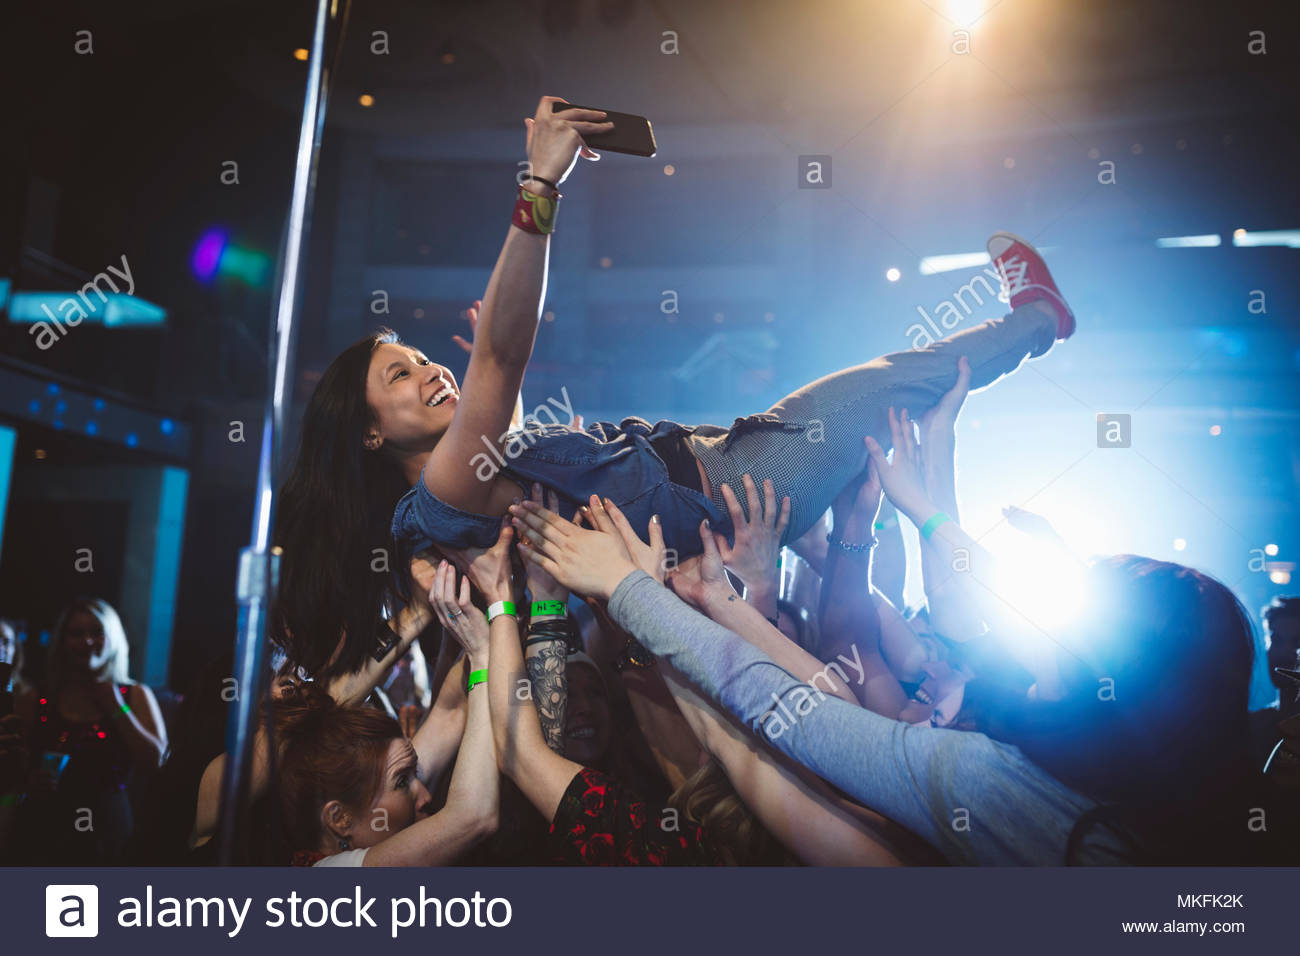 Exuberant woman with camera phone crowdsurfing at music concert in nightclub - Stock Image